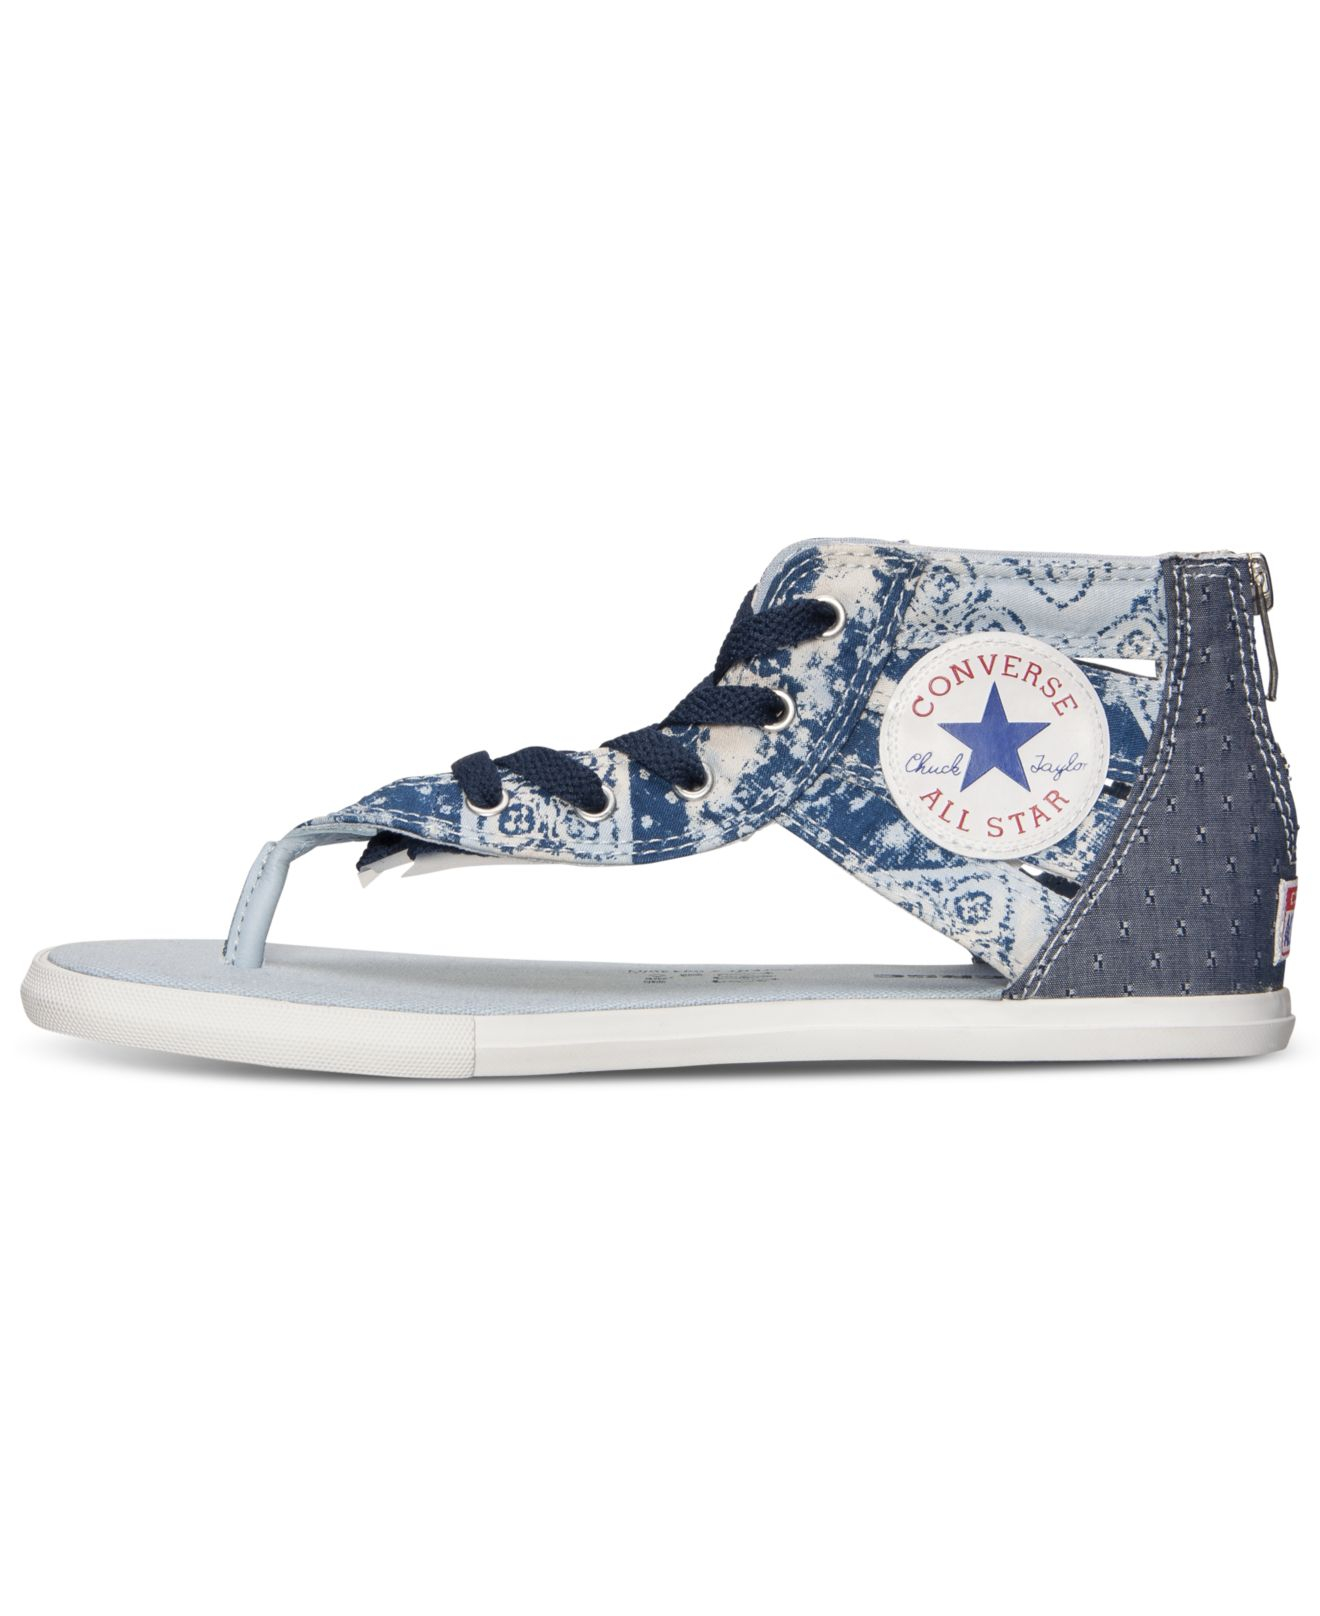 Fantastic CONVERSE Chuck Taylor Gladiator Mid Womens Sandals